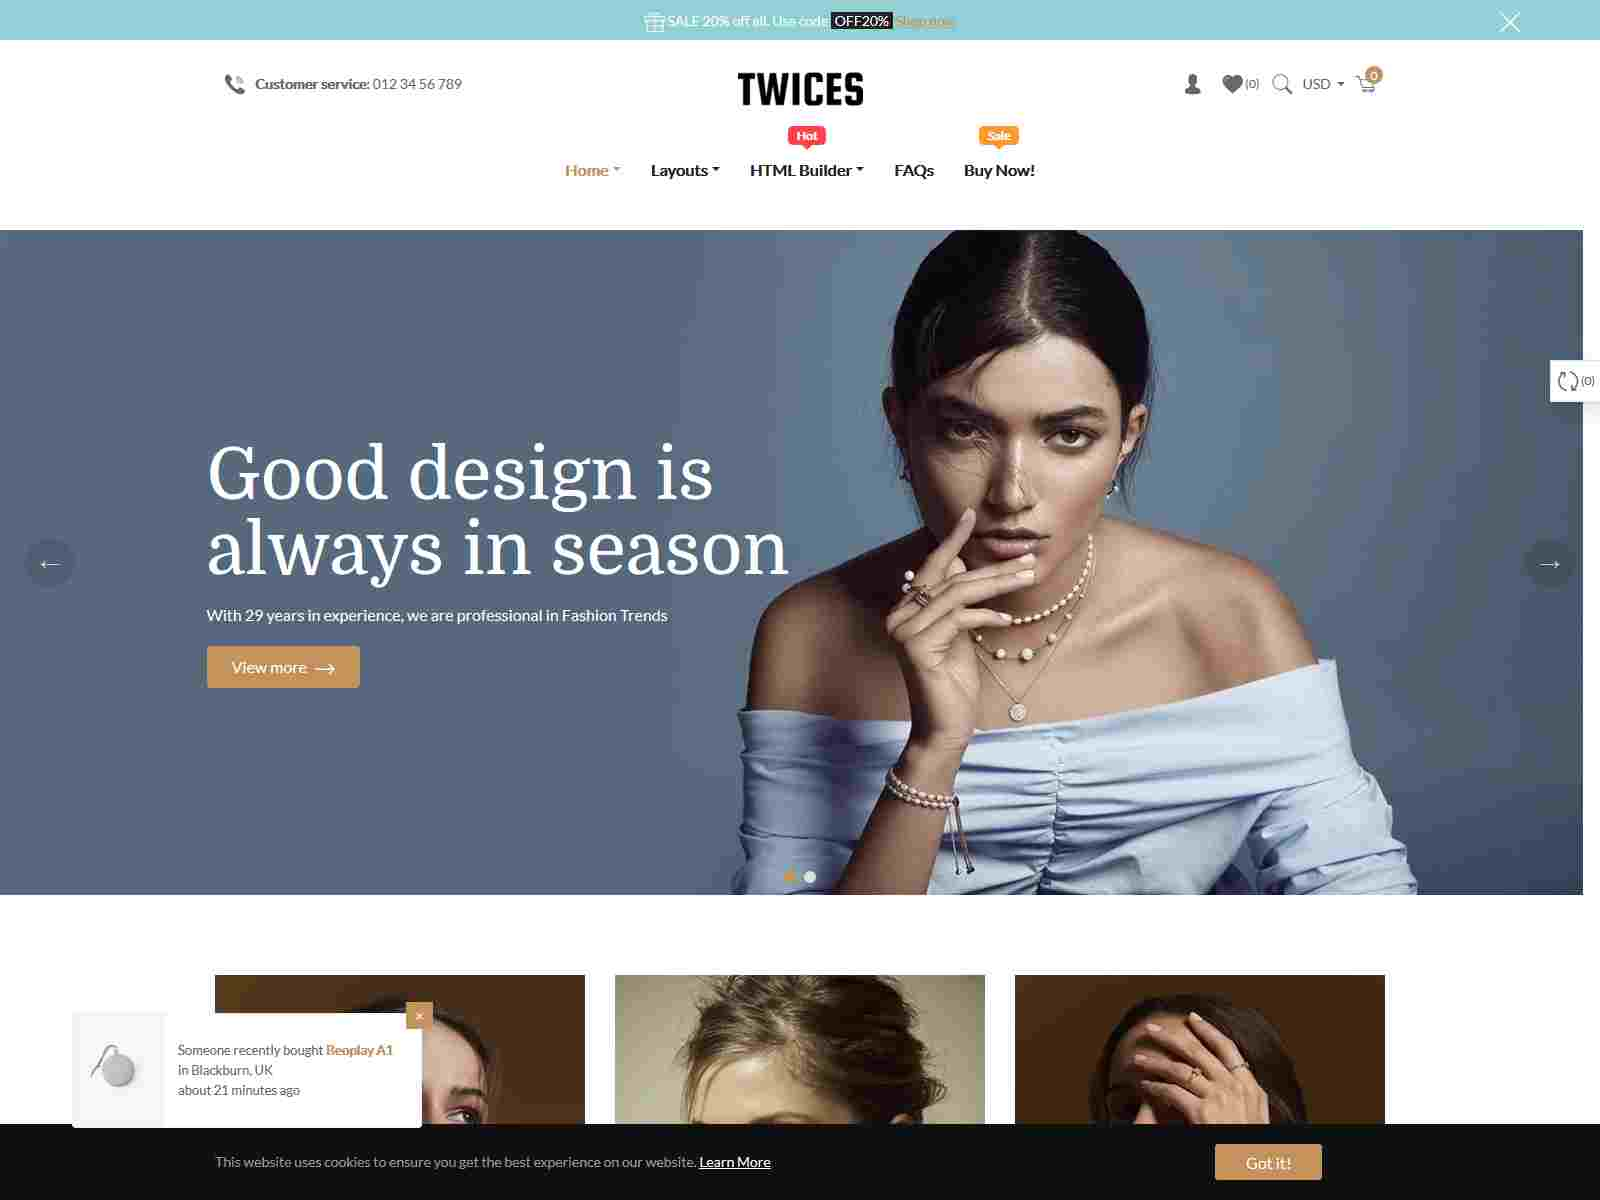 Ap Twices - All-in-one eCommerce Shopify Theme